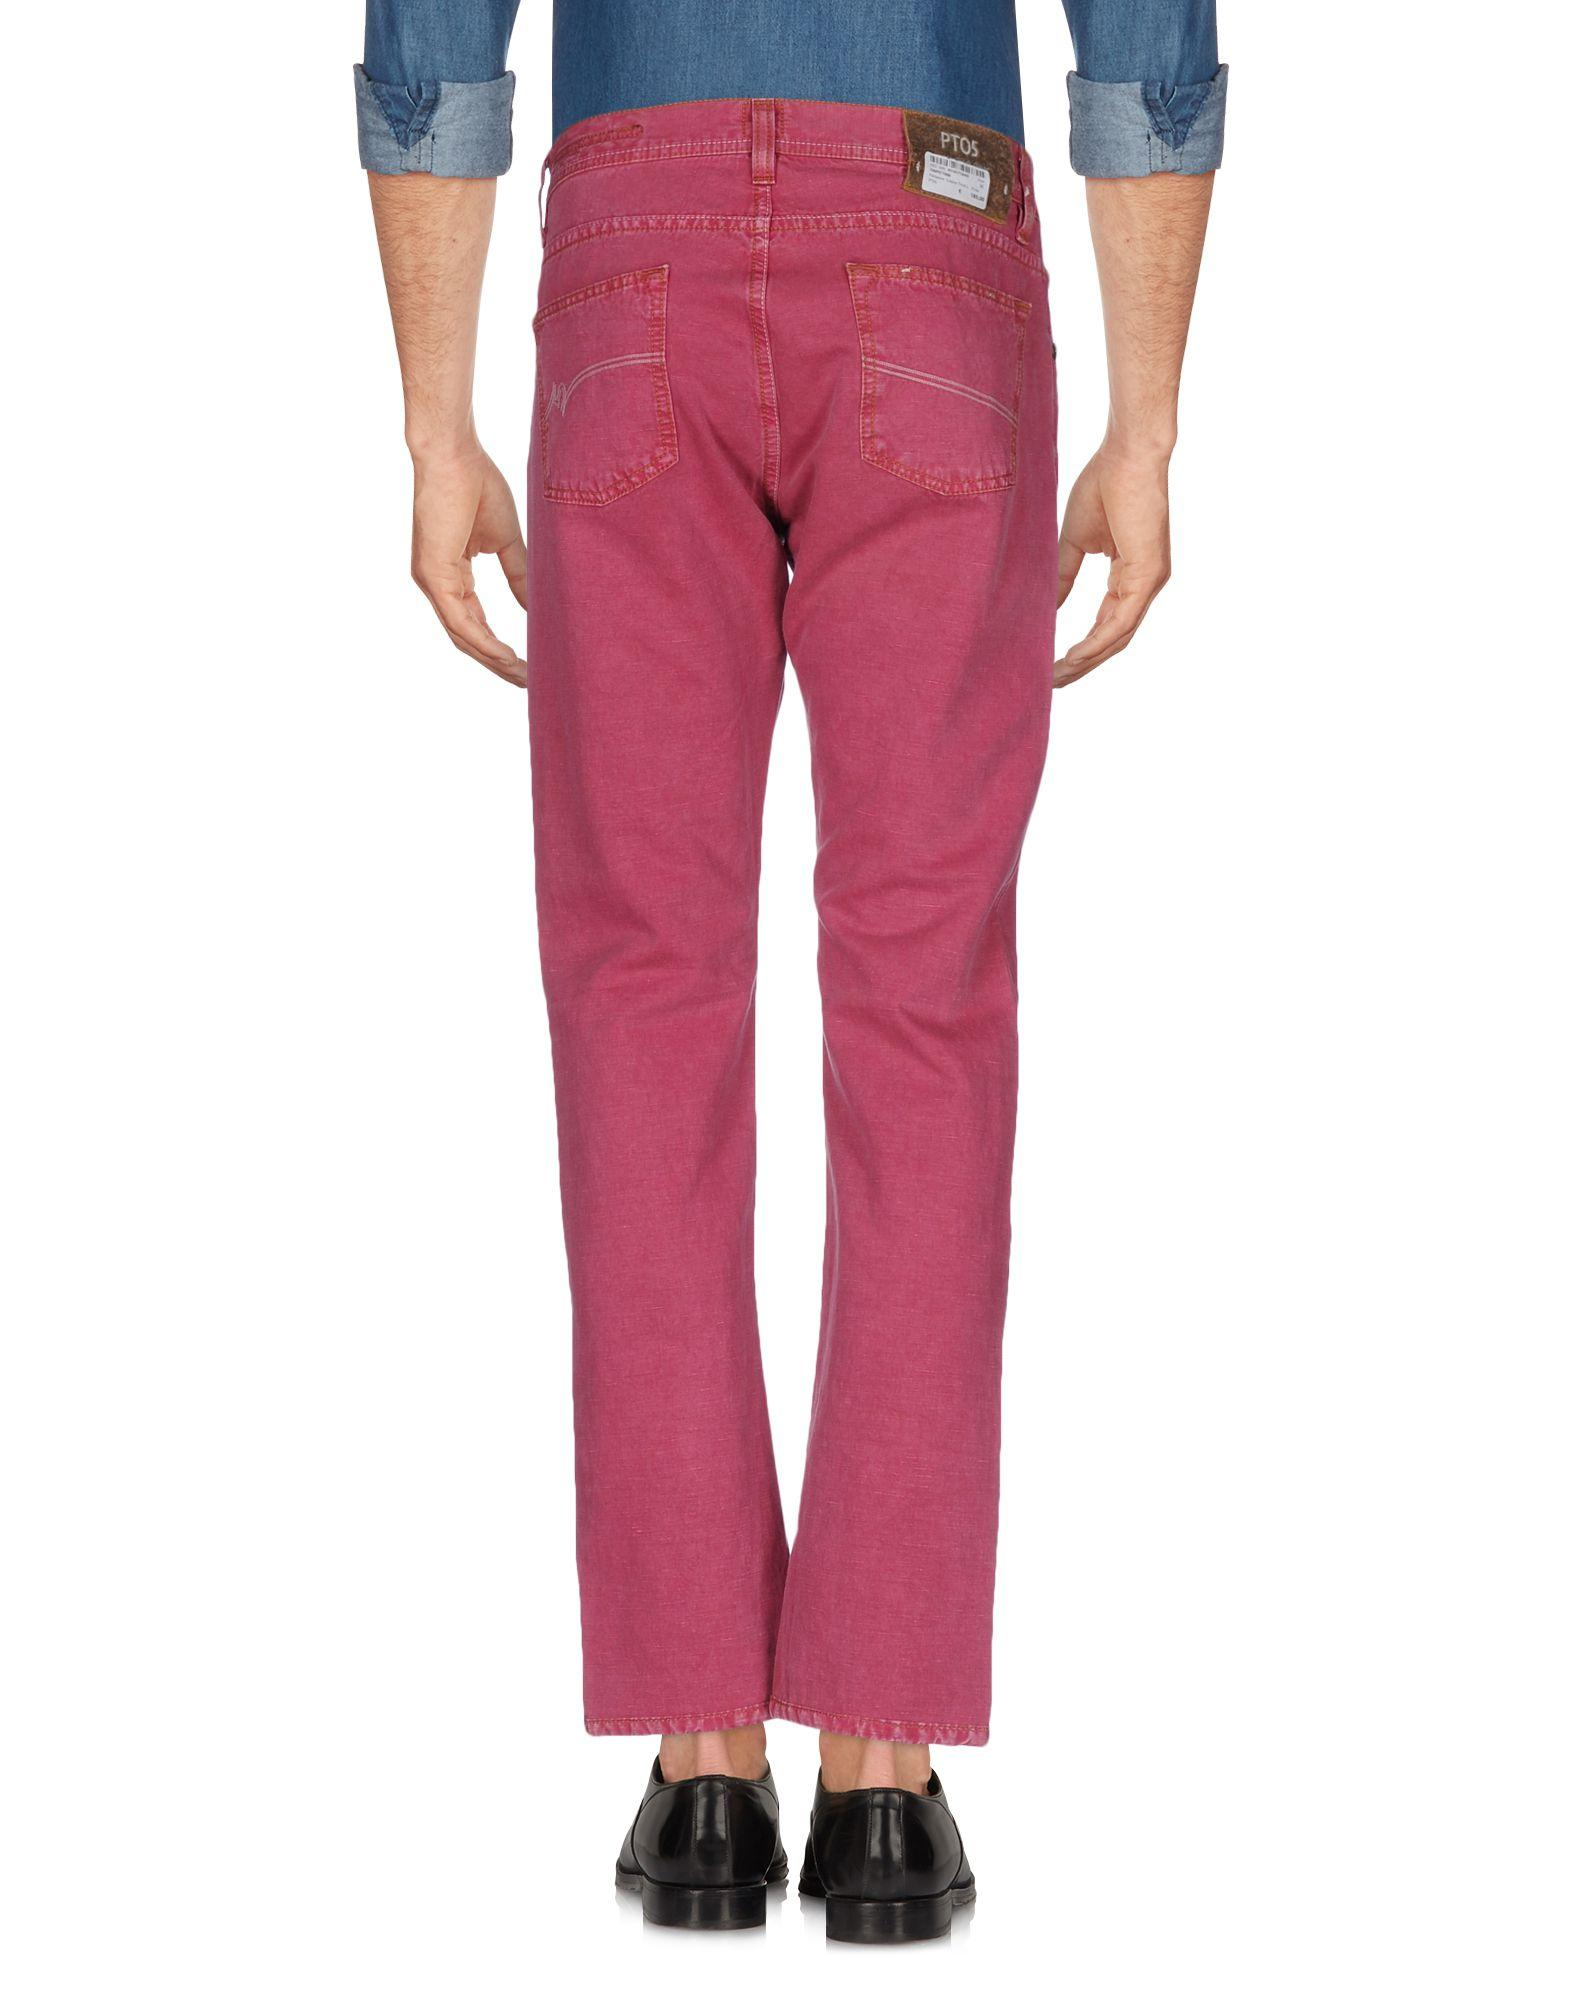 Pt05 Leather Casual Trouser in Mauve (Purple) for Men